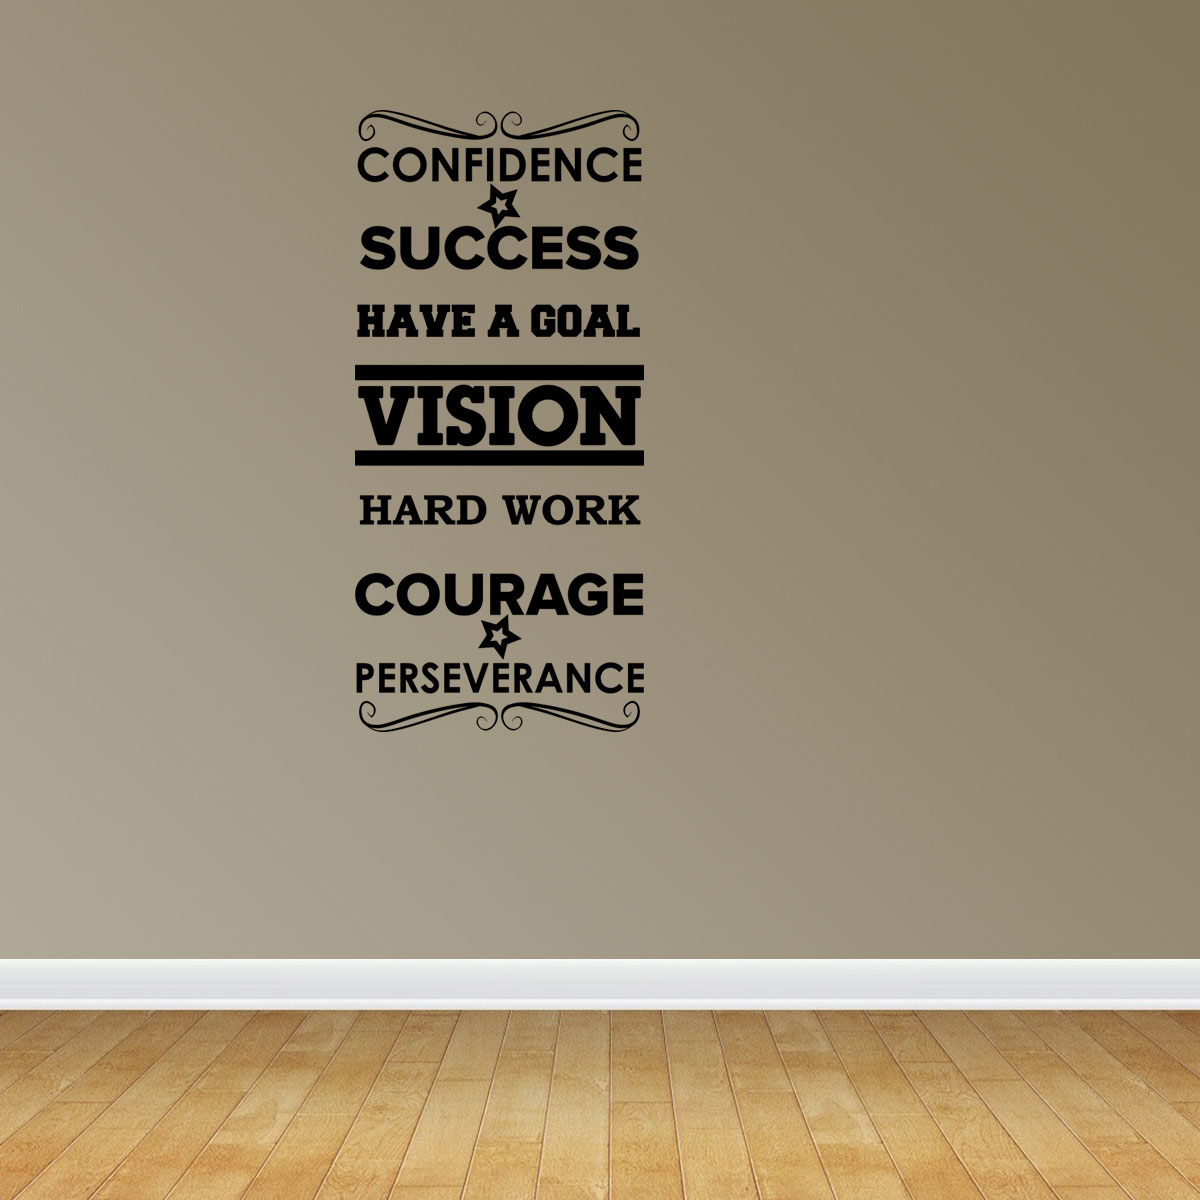 Success Word Collage Vinyl Wall Decals Inspirational Decal Office Decal JP63